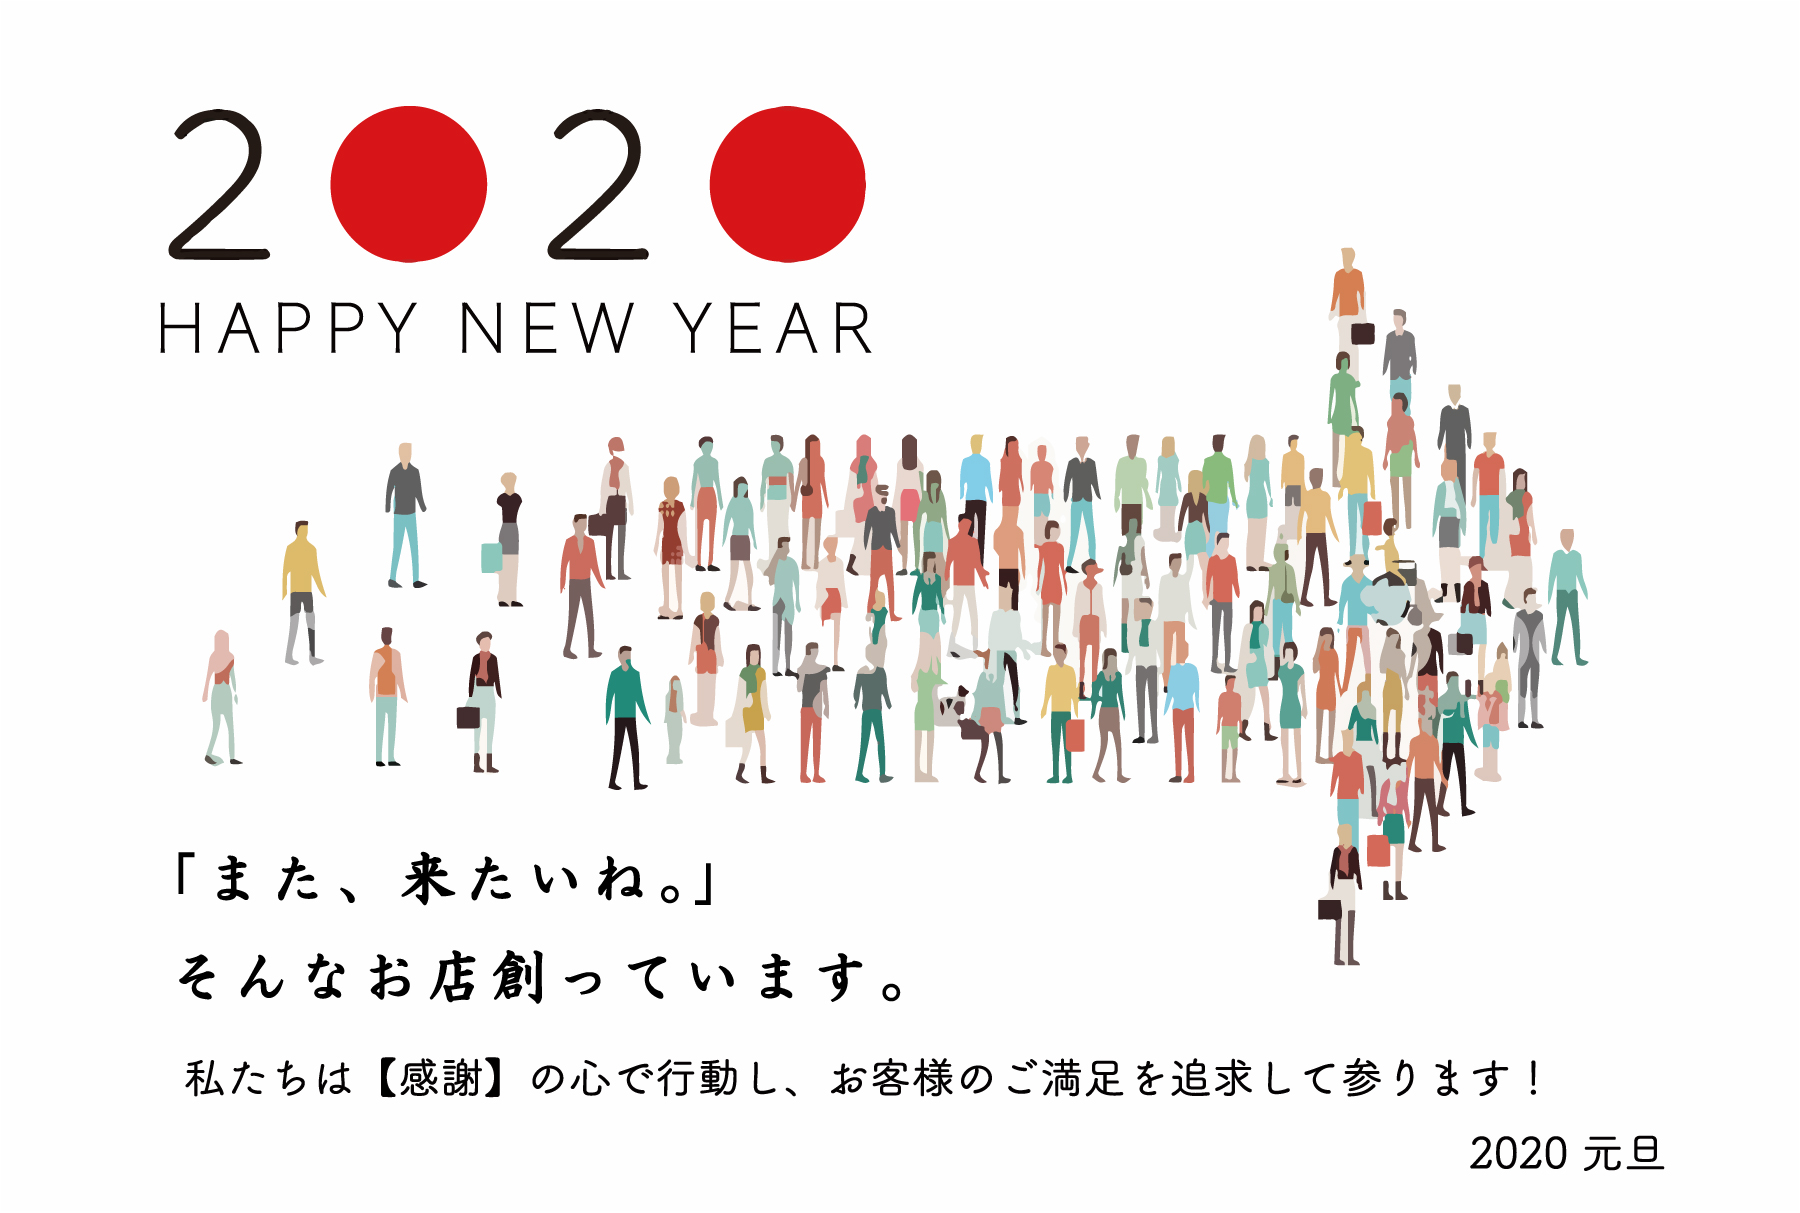 HAPPY NEW YEAR 2020 !